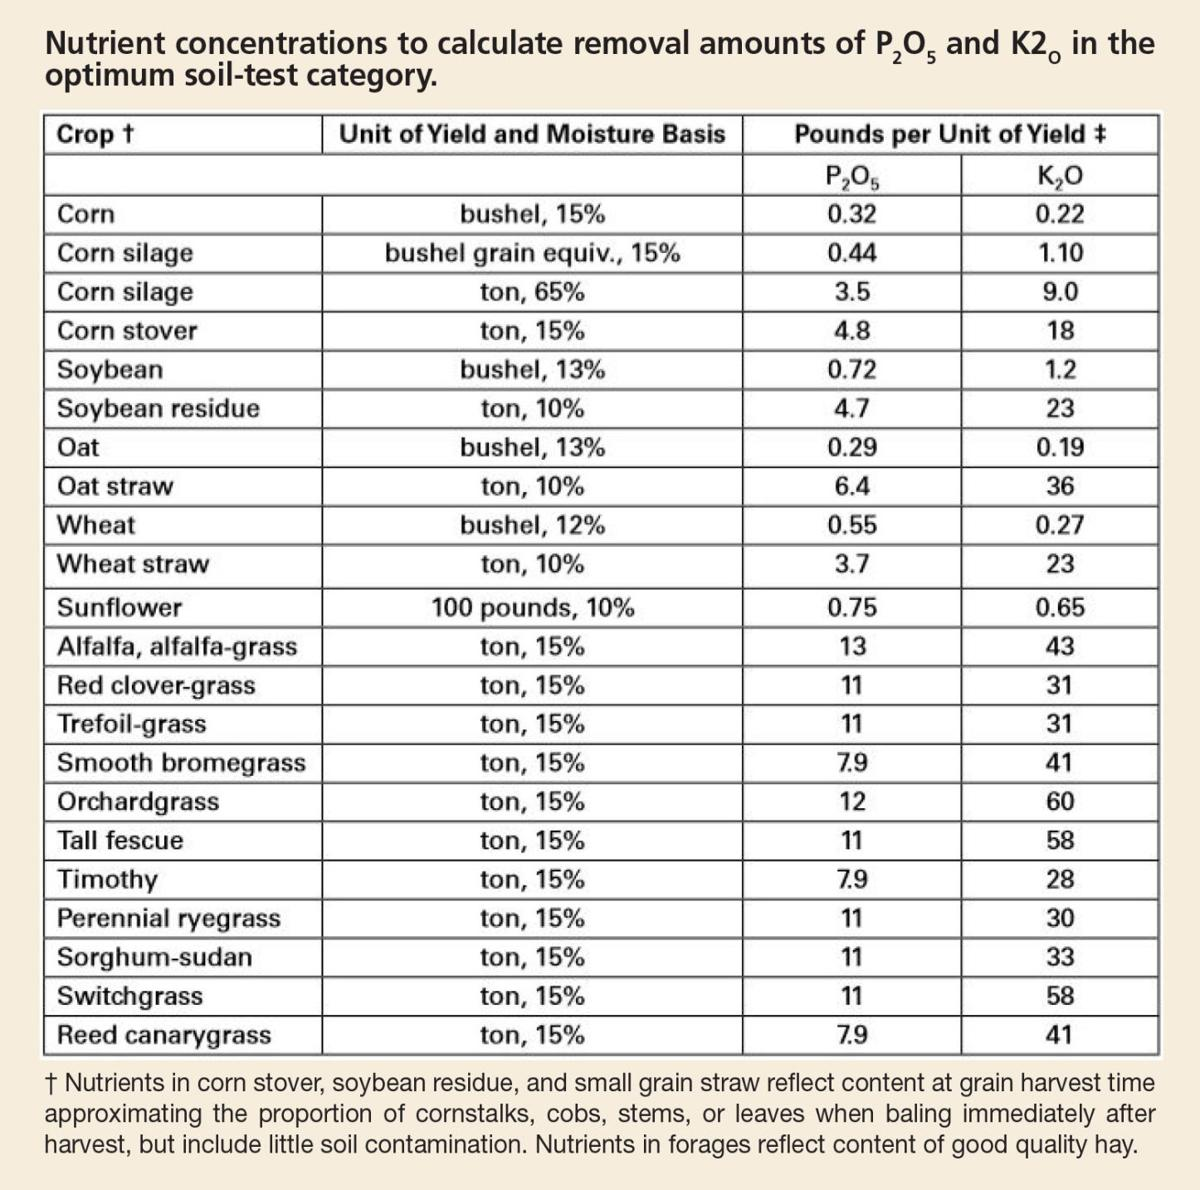 Crop nutrient concentrations